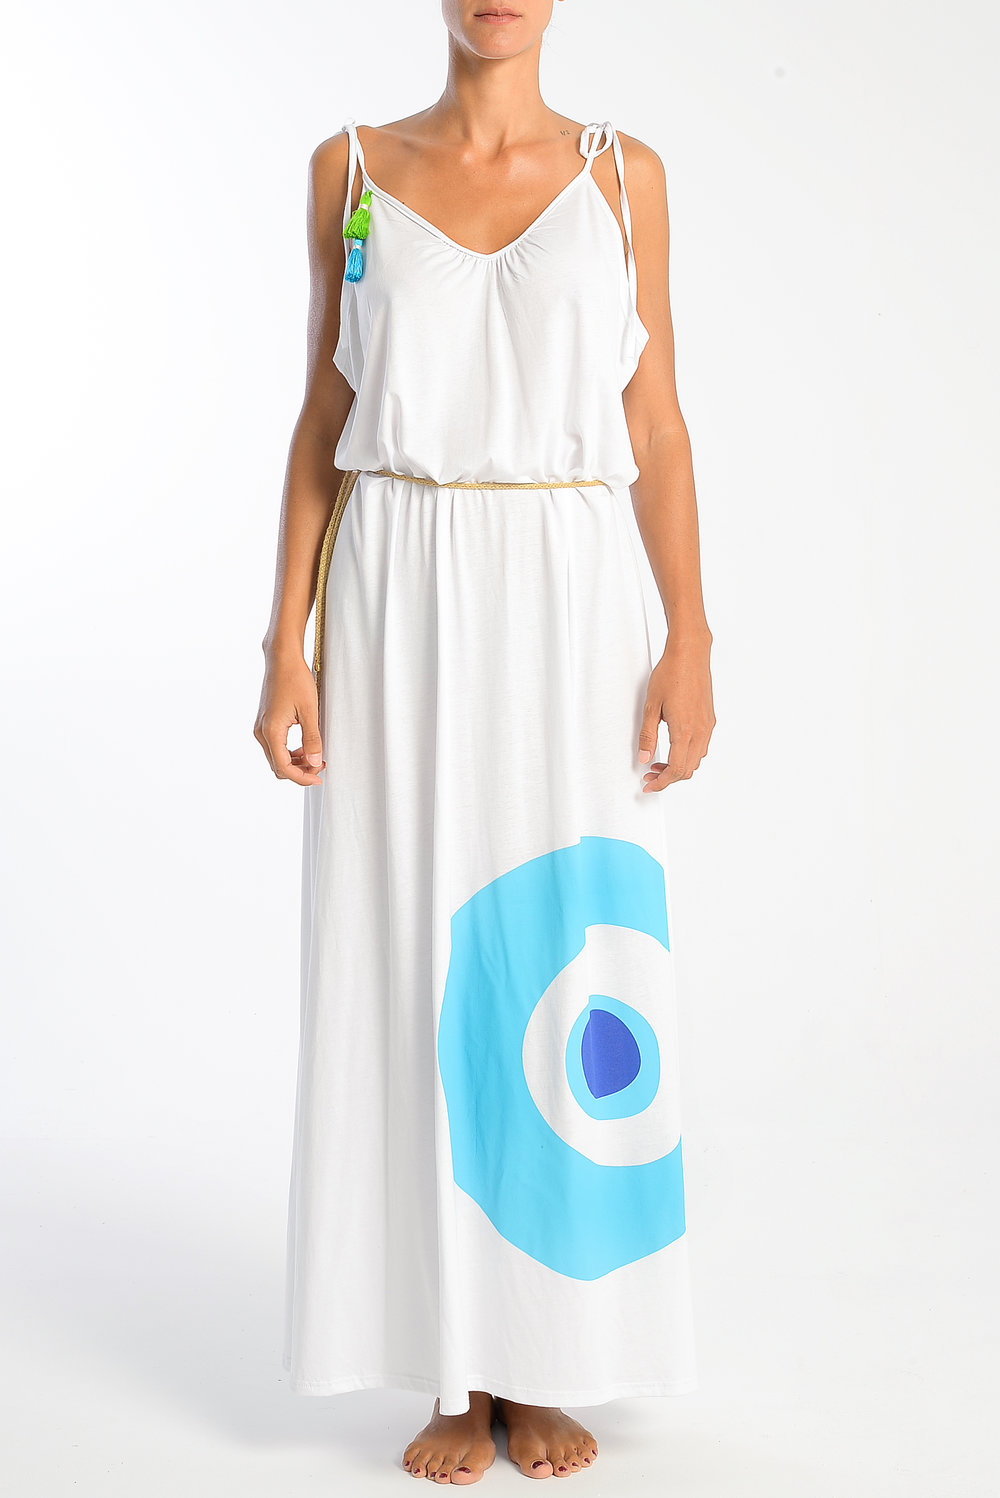 evil-eye-turquoise-blue-on-white-long-strap-dress-cotton-with-belt.jpg